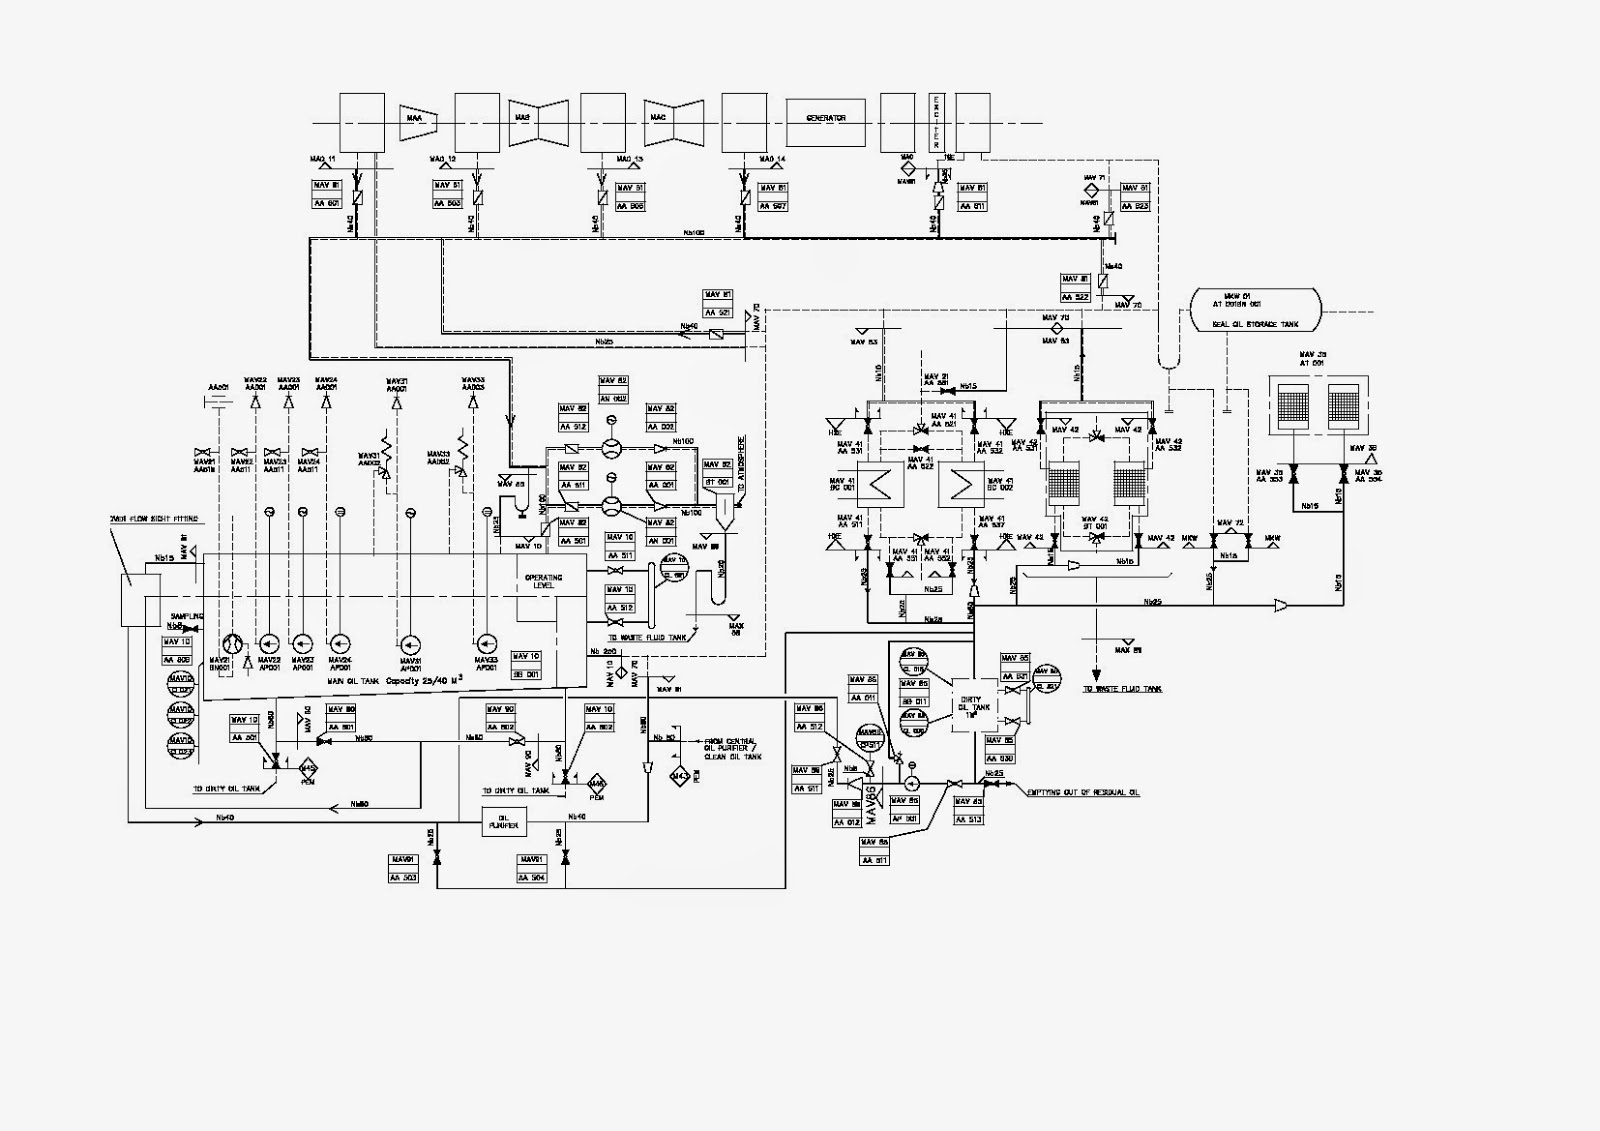 Power Plant Diagram 500 Mw Power Plant Diagram Wiring Library